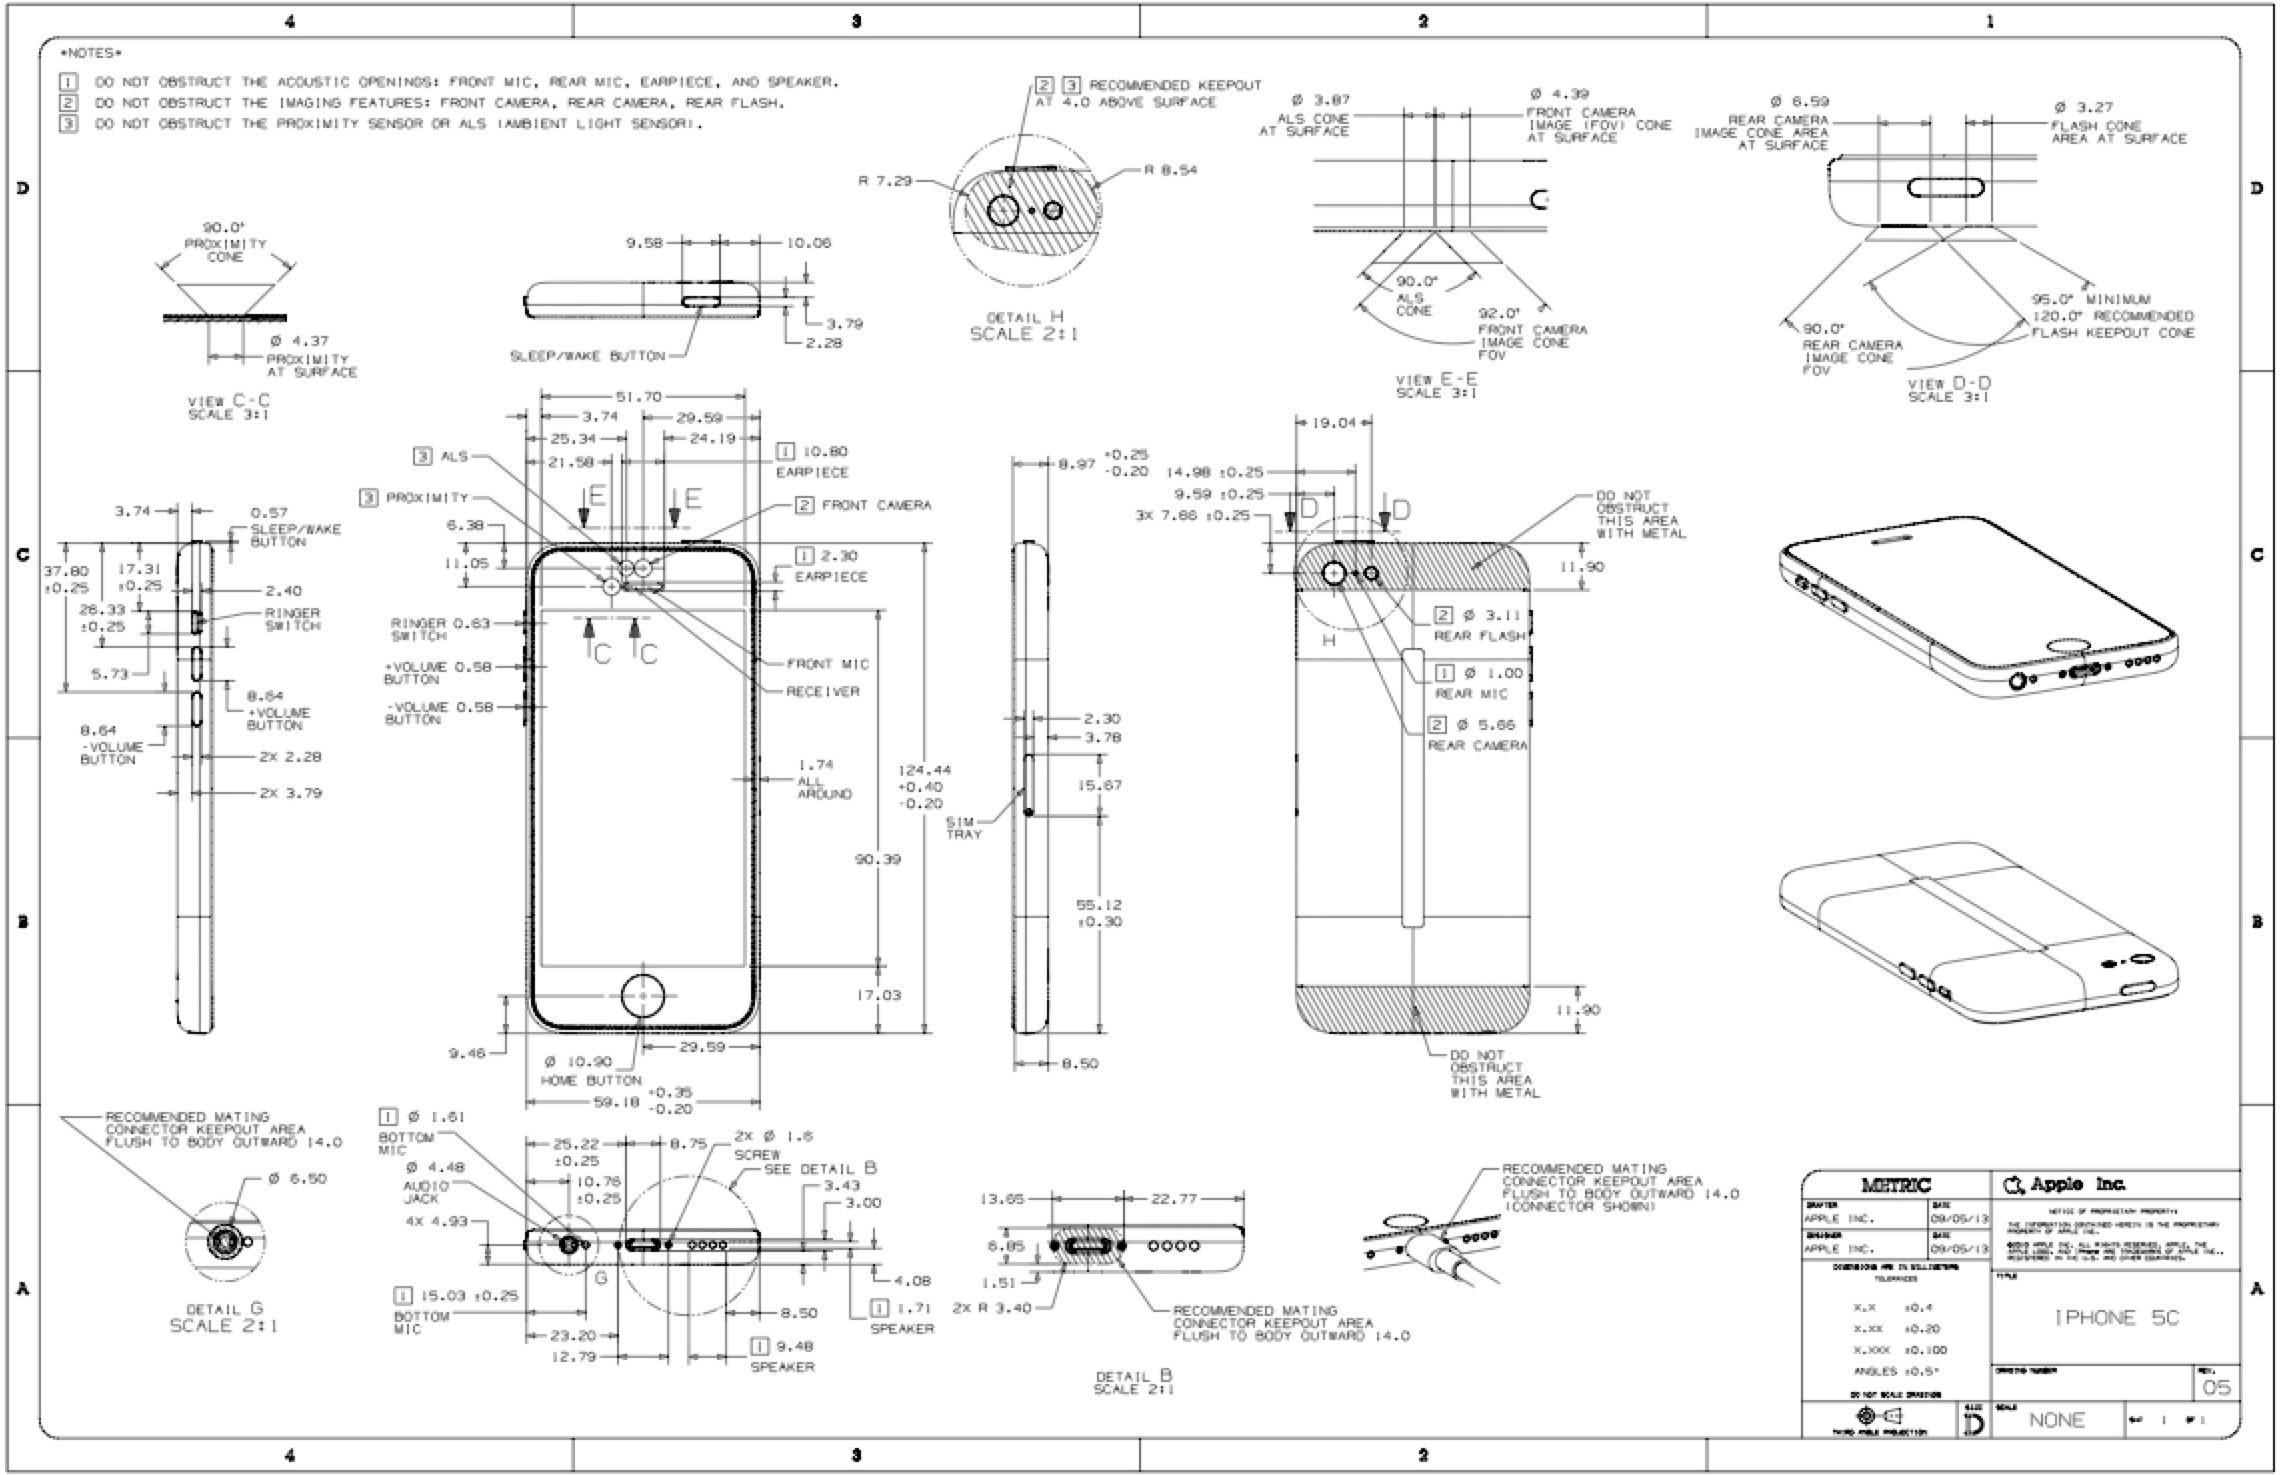 designing an iphone 5c 5s case? here are your official apple Schematic Design Drawings